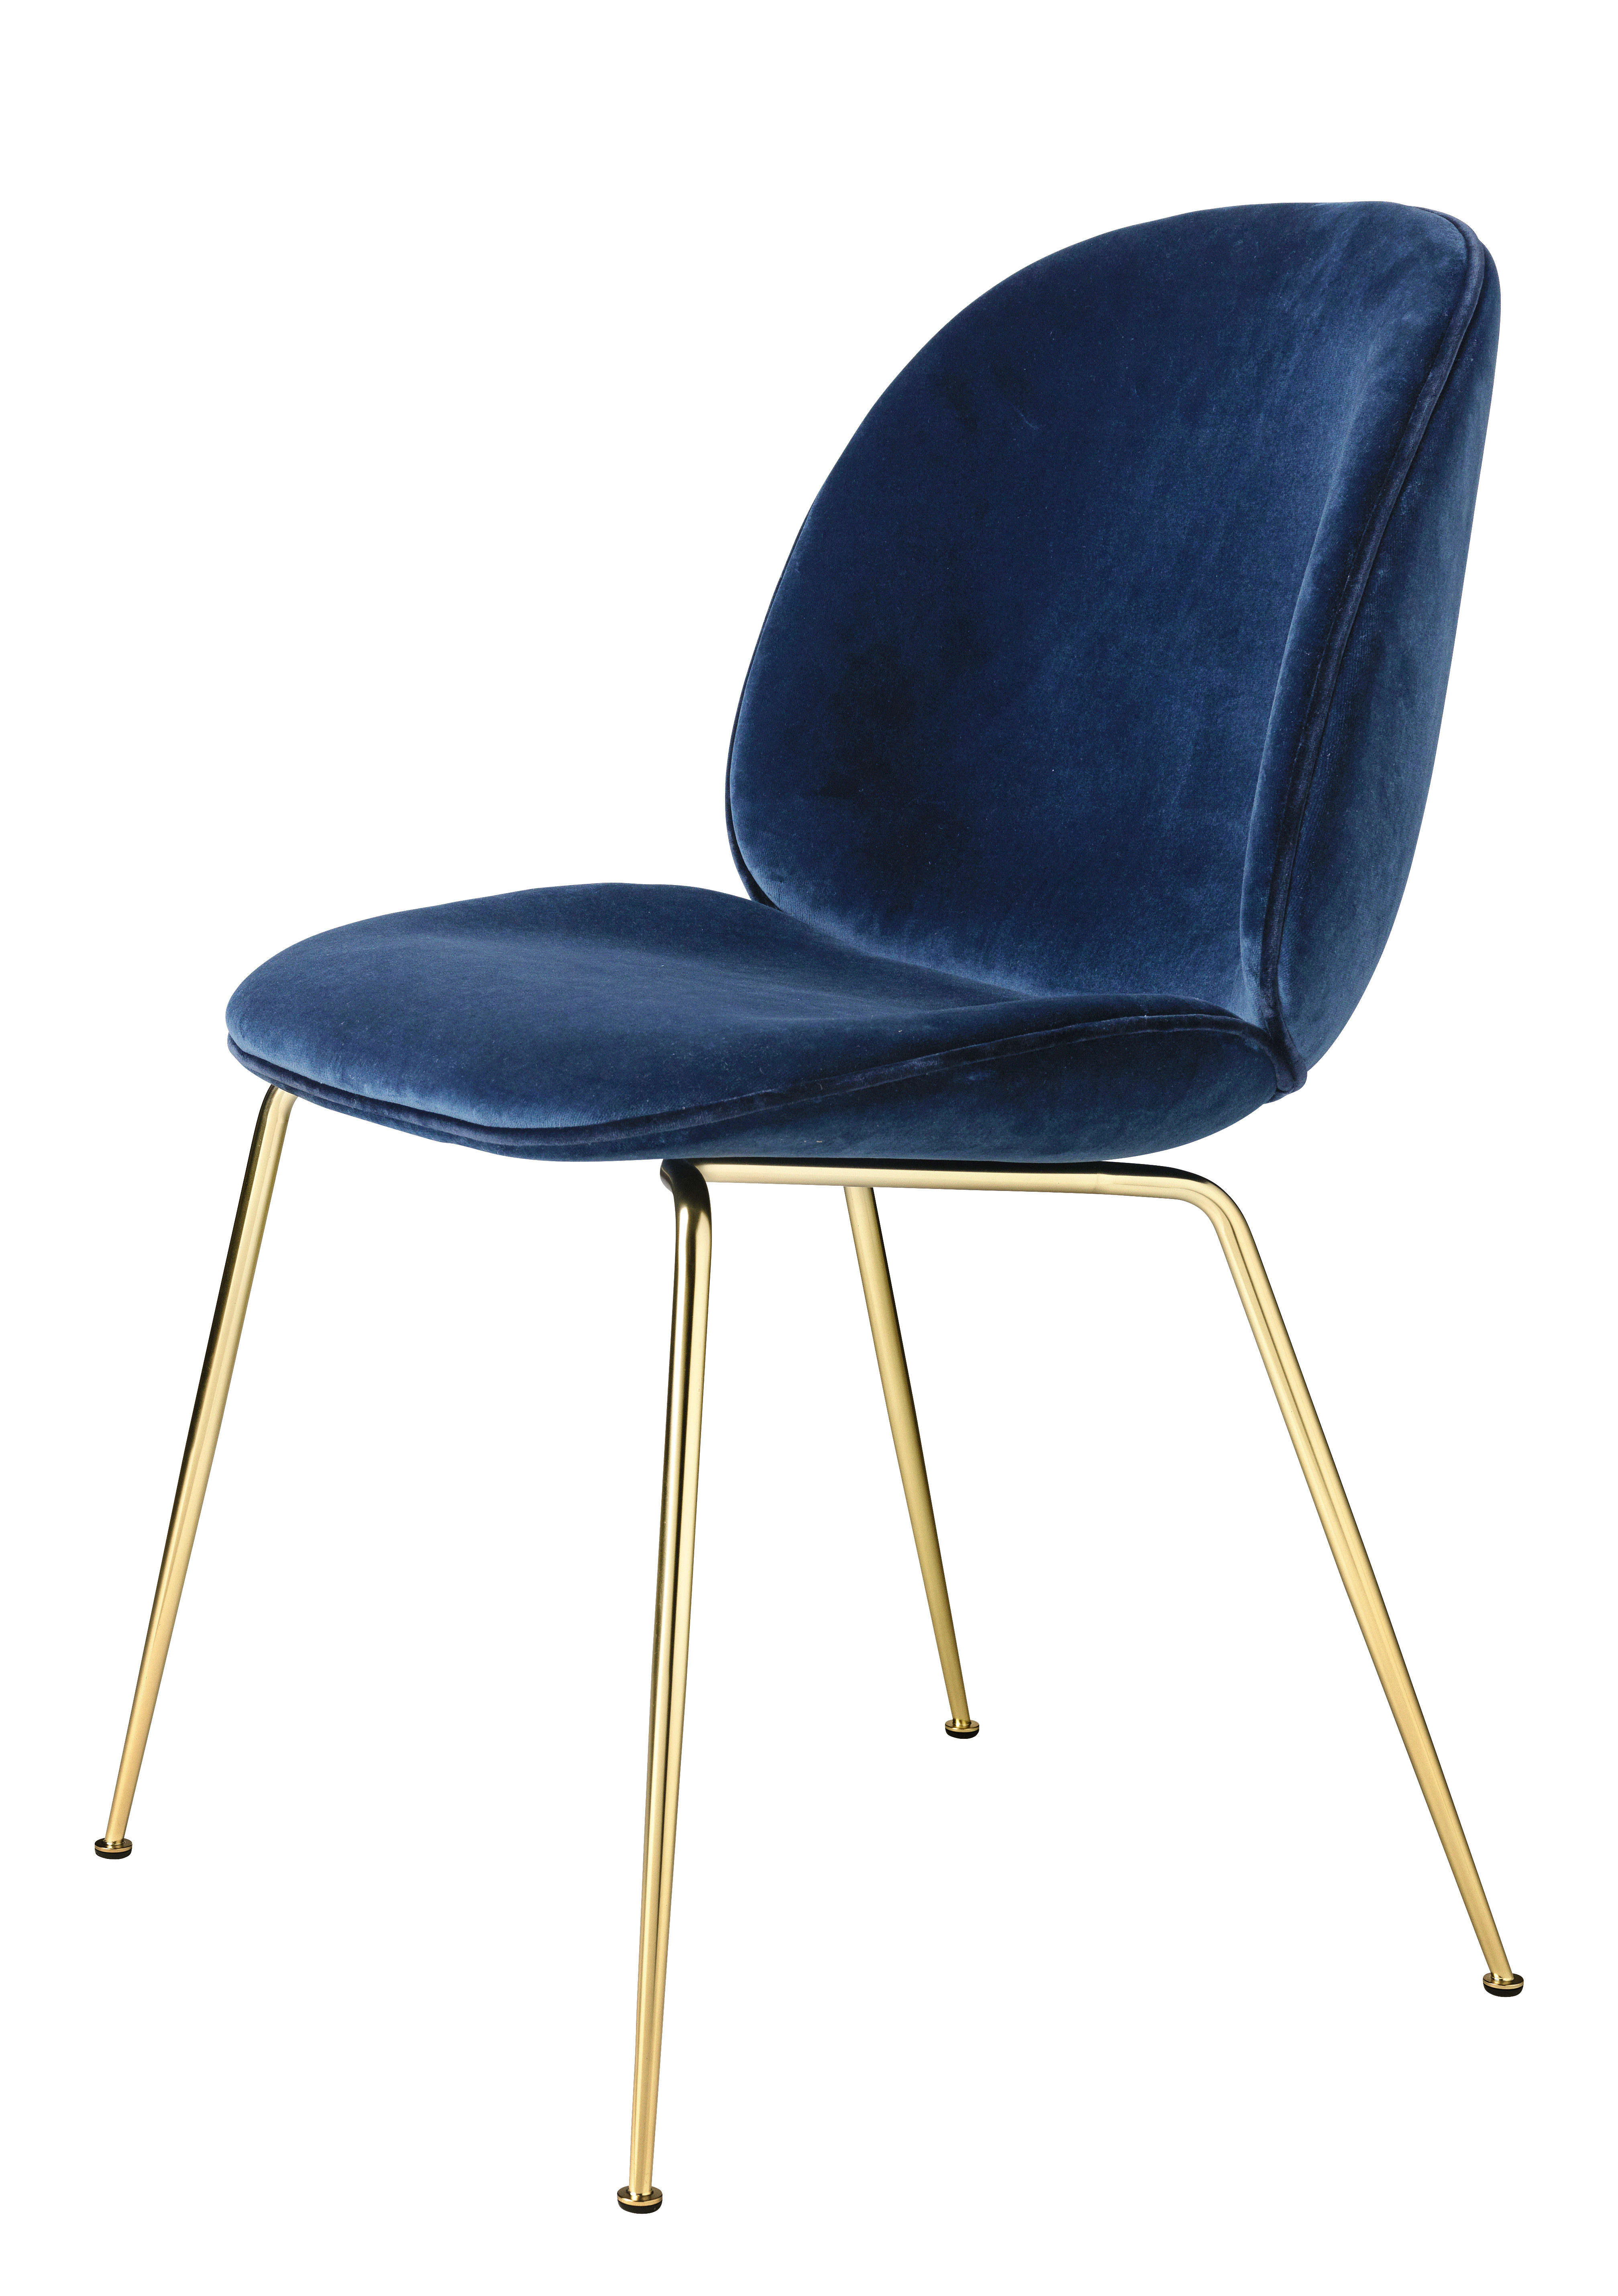 Chaise rembourr e beetle gamfratesi velours bleu for Chaise industrielle haute